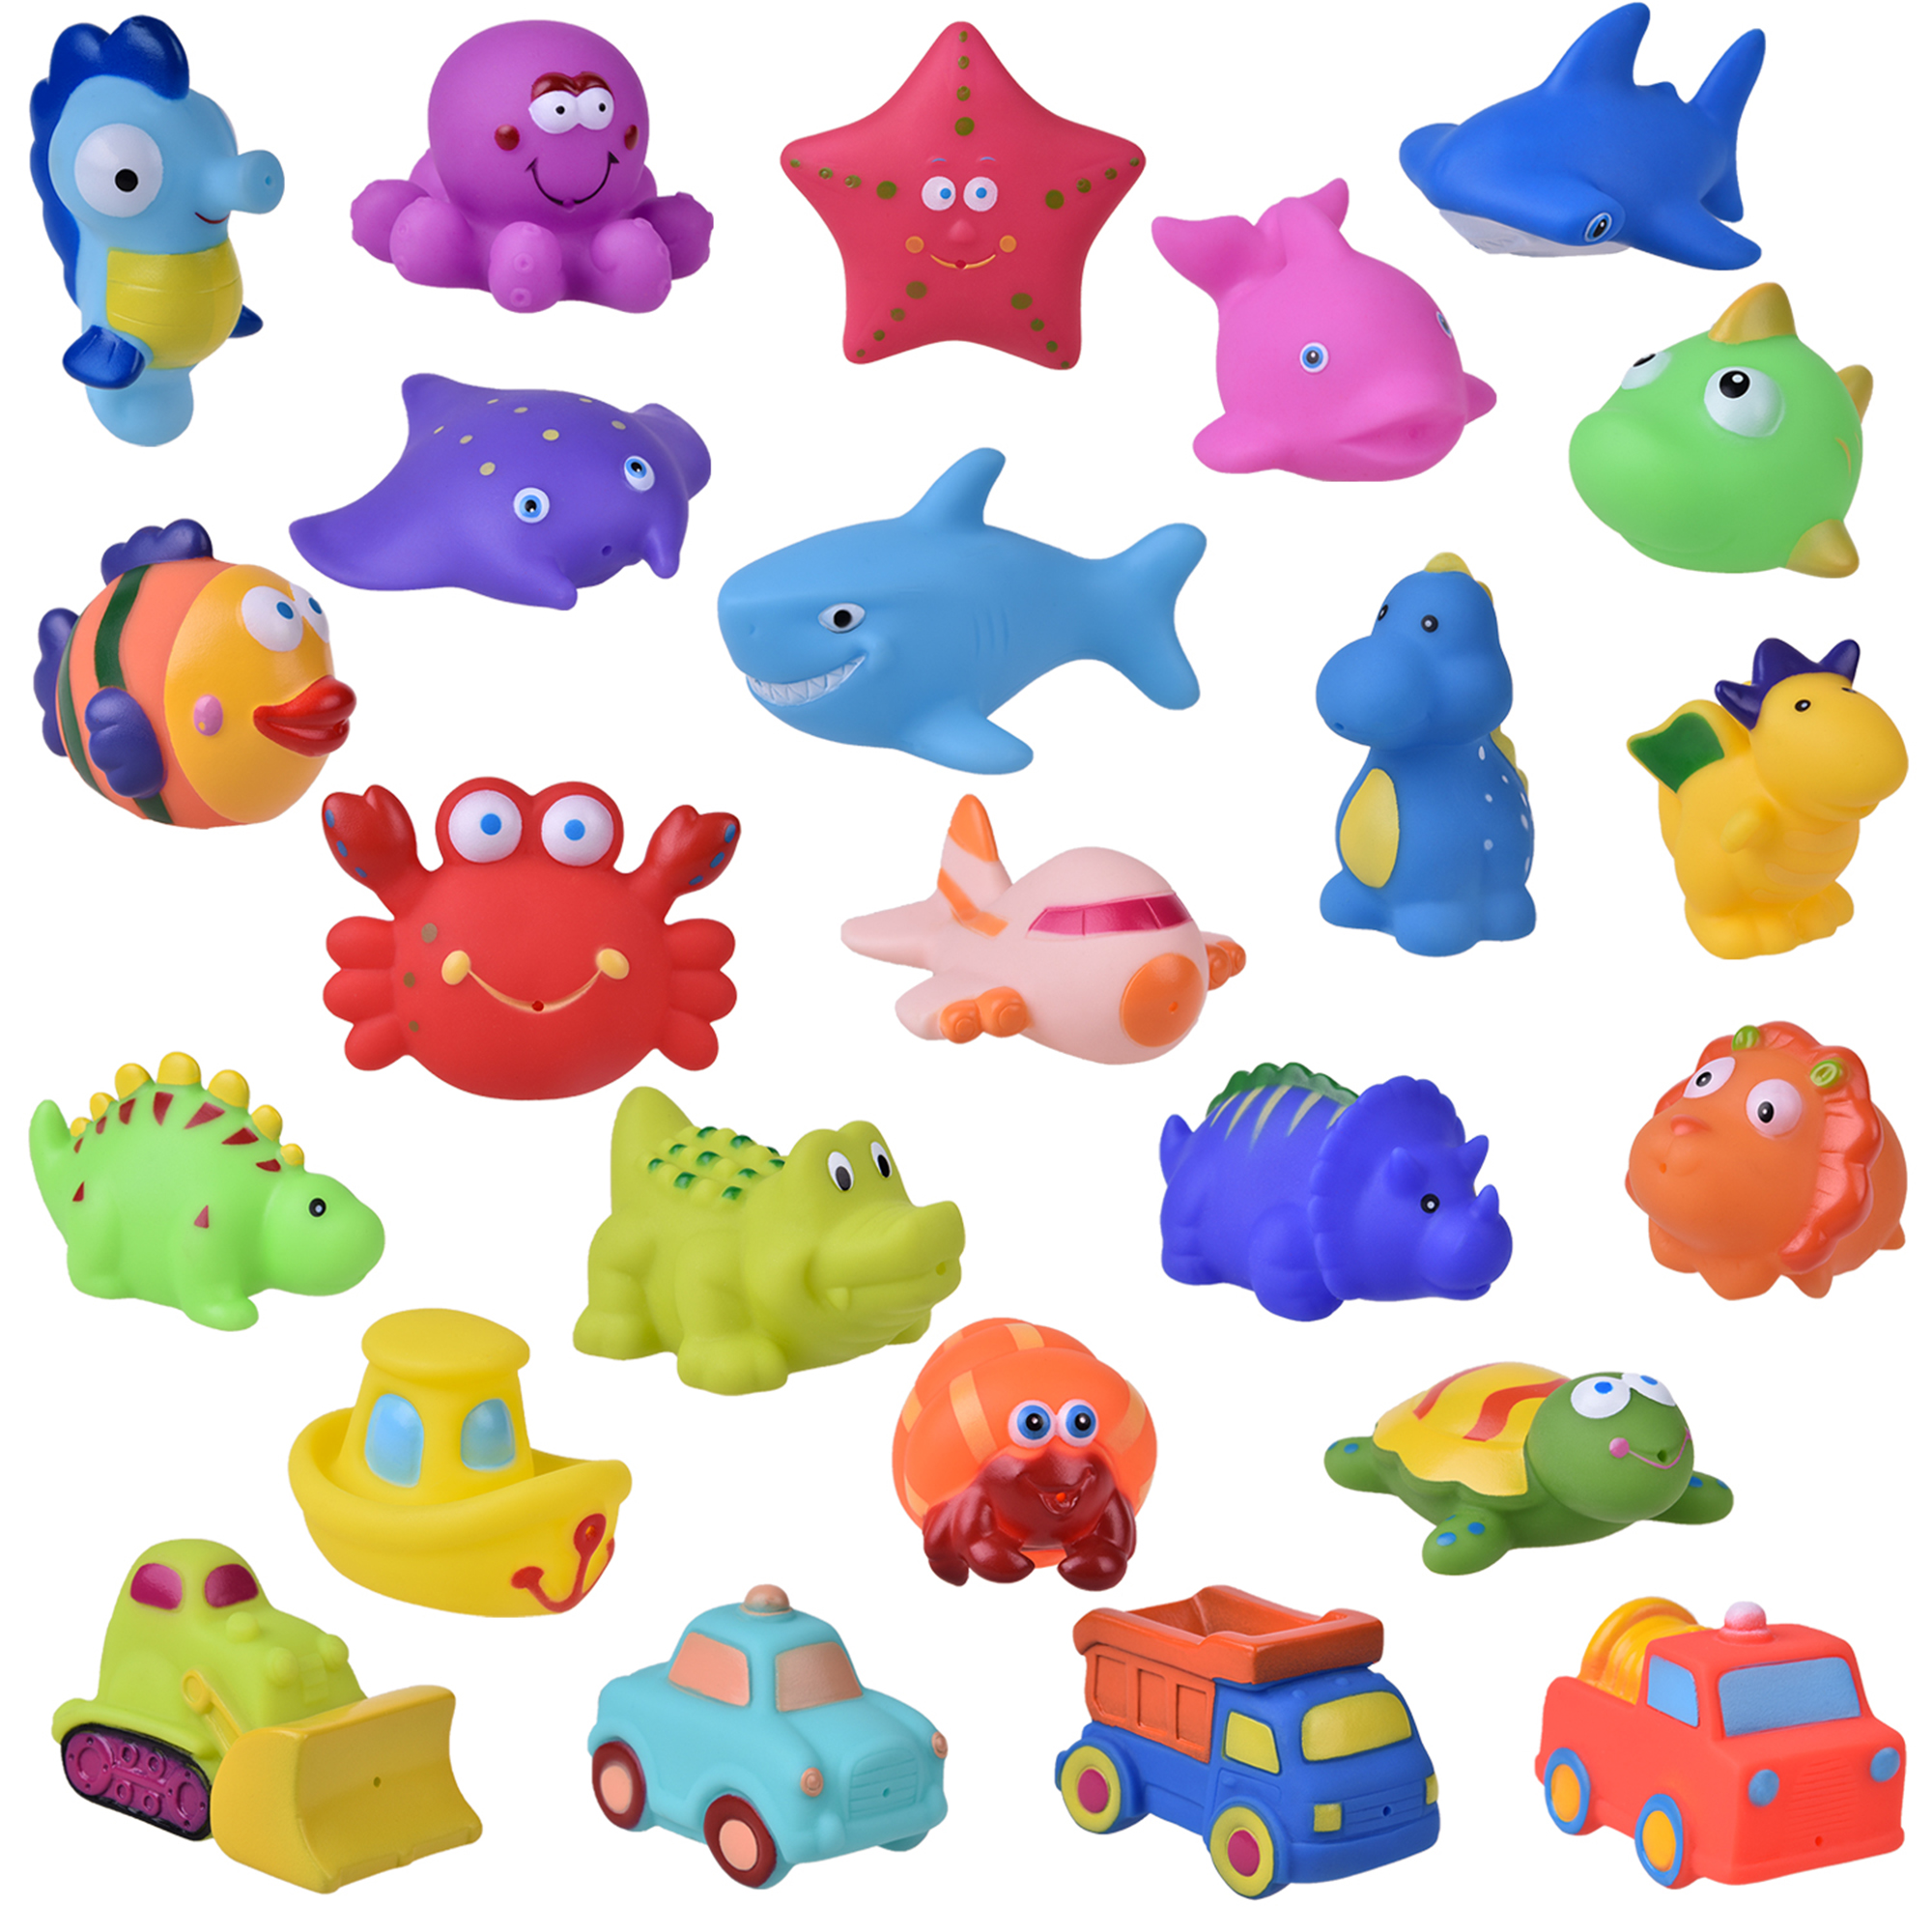 Bath Toys for Toddler, Sea Animals Squirter Toys for Kids, Car Squirter Toys for Boys, Bath Toy Organizer 24 PCs F-196